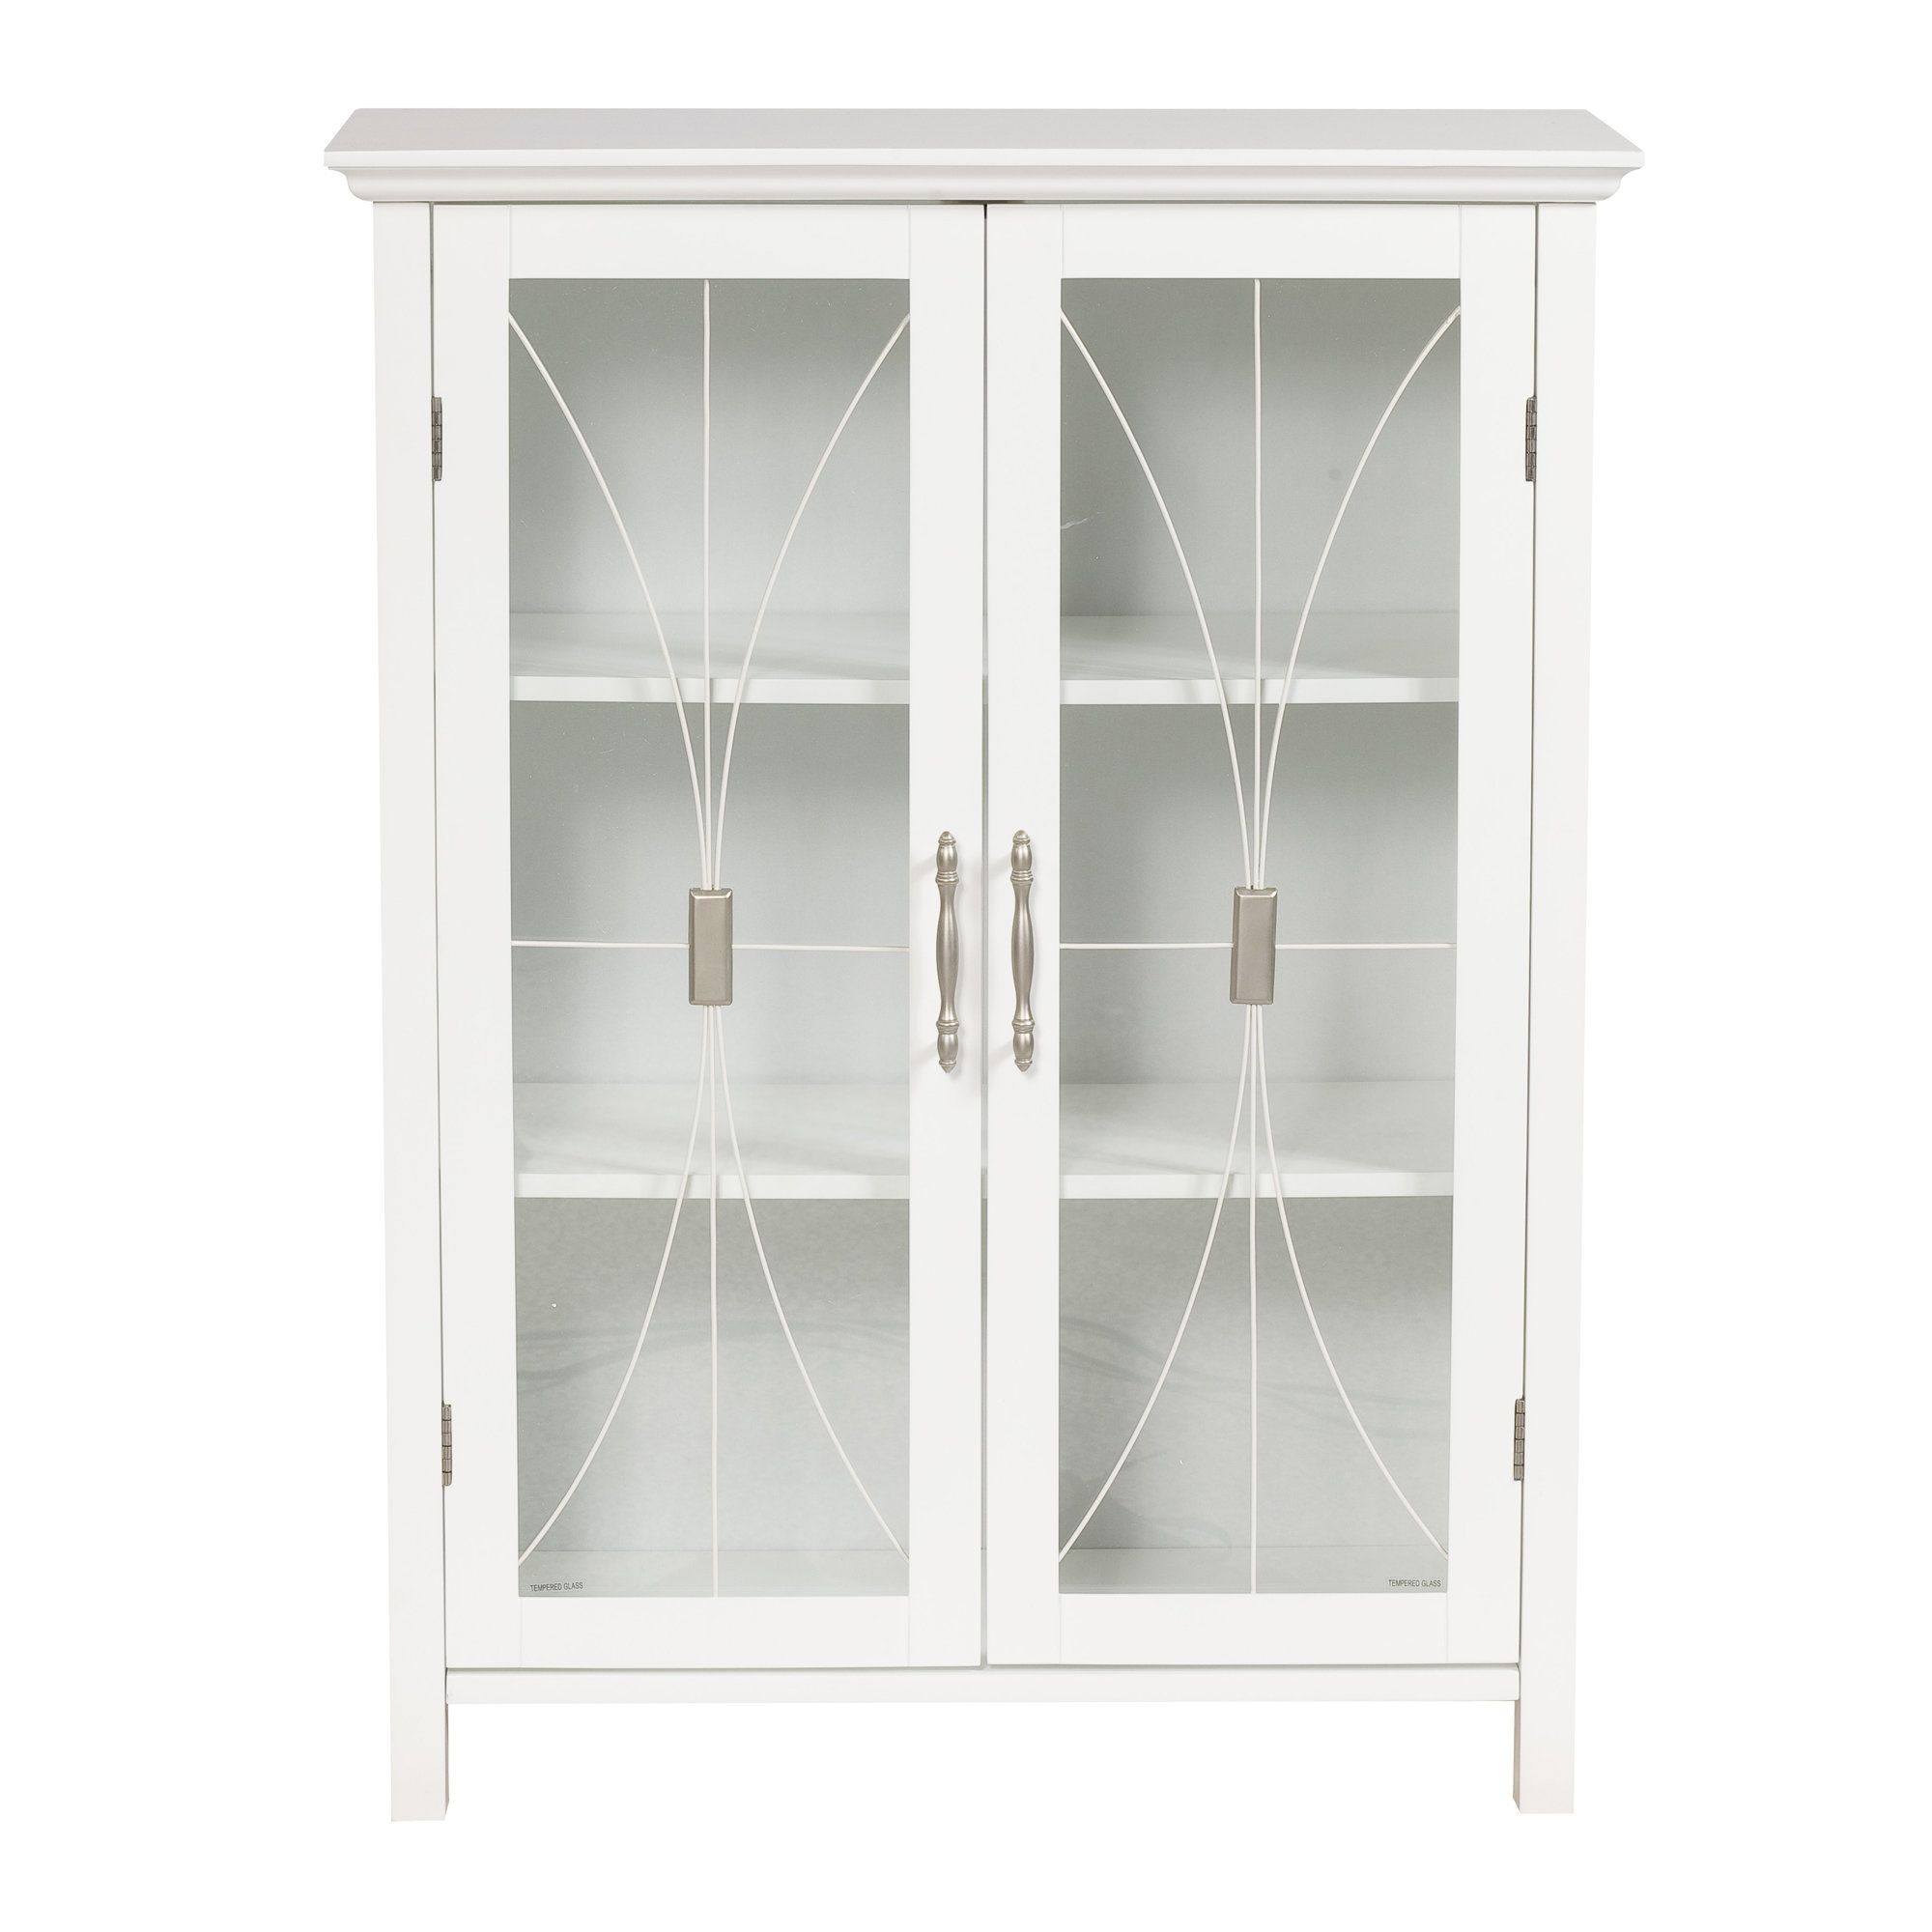 Romulus 15 W X 63 H Linen Tower White Storage Cabinets Bathroom Wall Cabinets Free Standing Cabinets